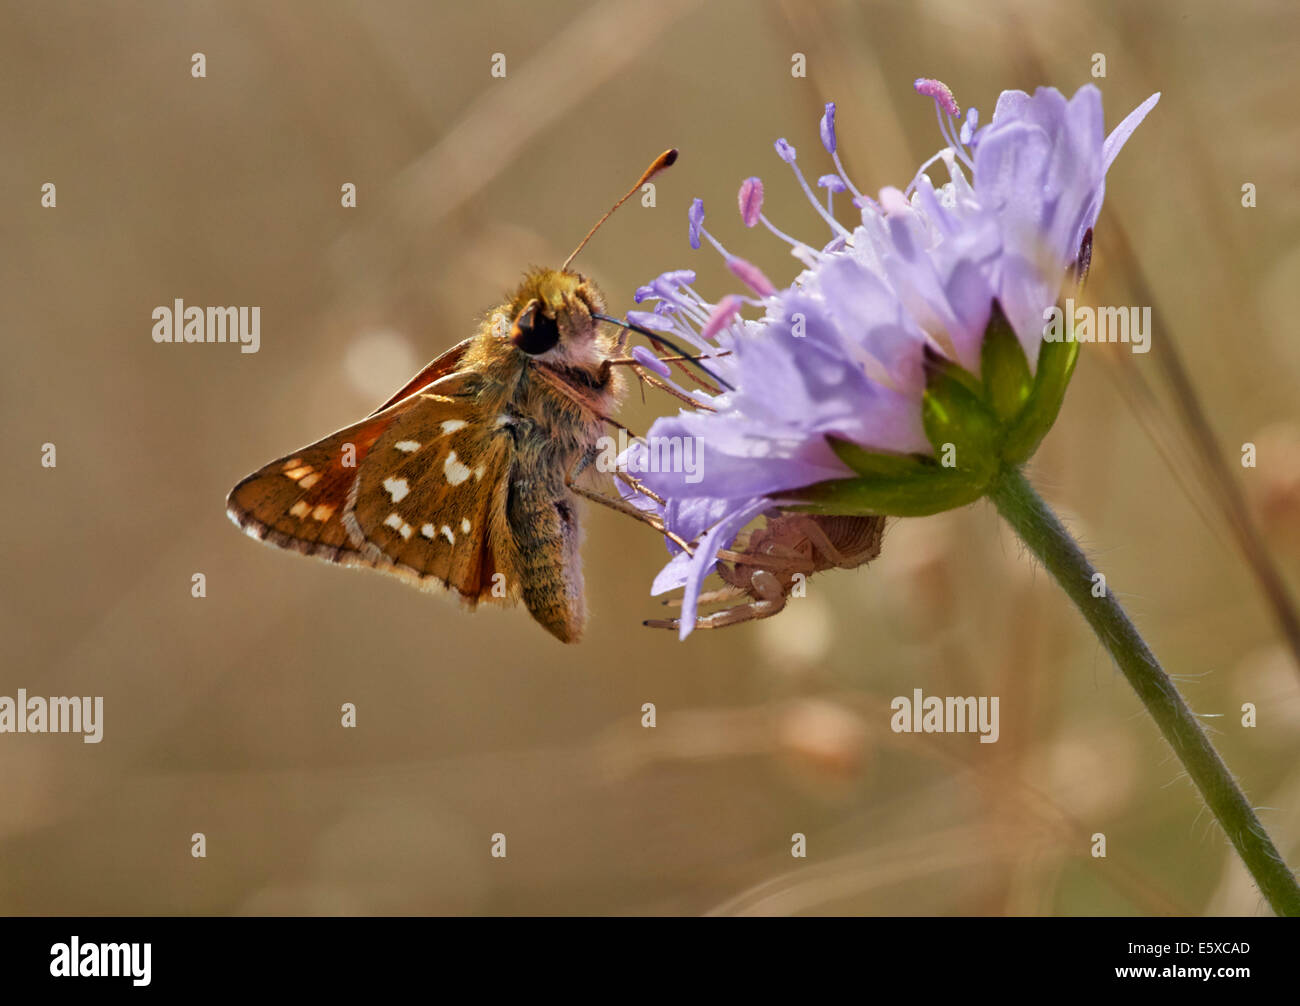 Silver-spotted Skipper on field scabious flower. Denbies Hillside, Ranmore Common, Surrey, England. - Stock Image